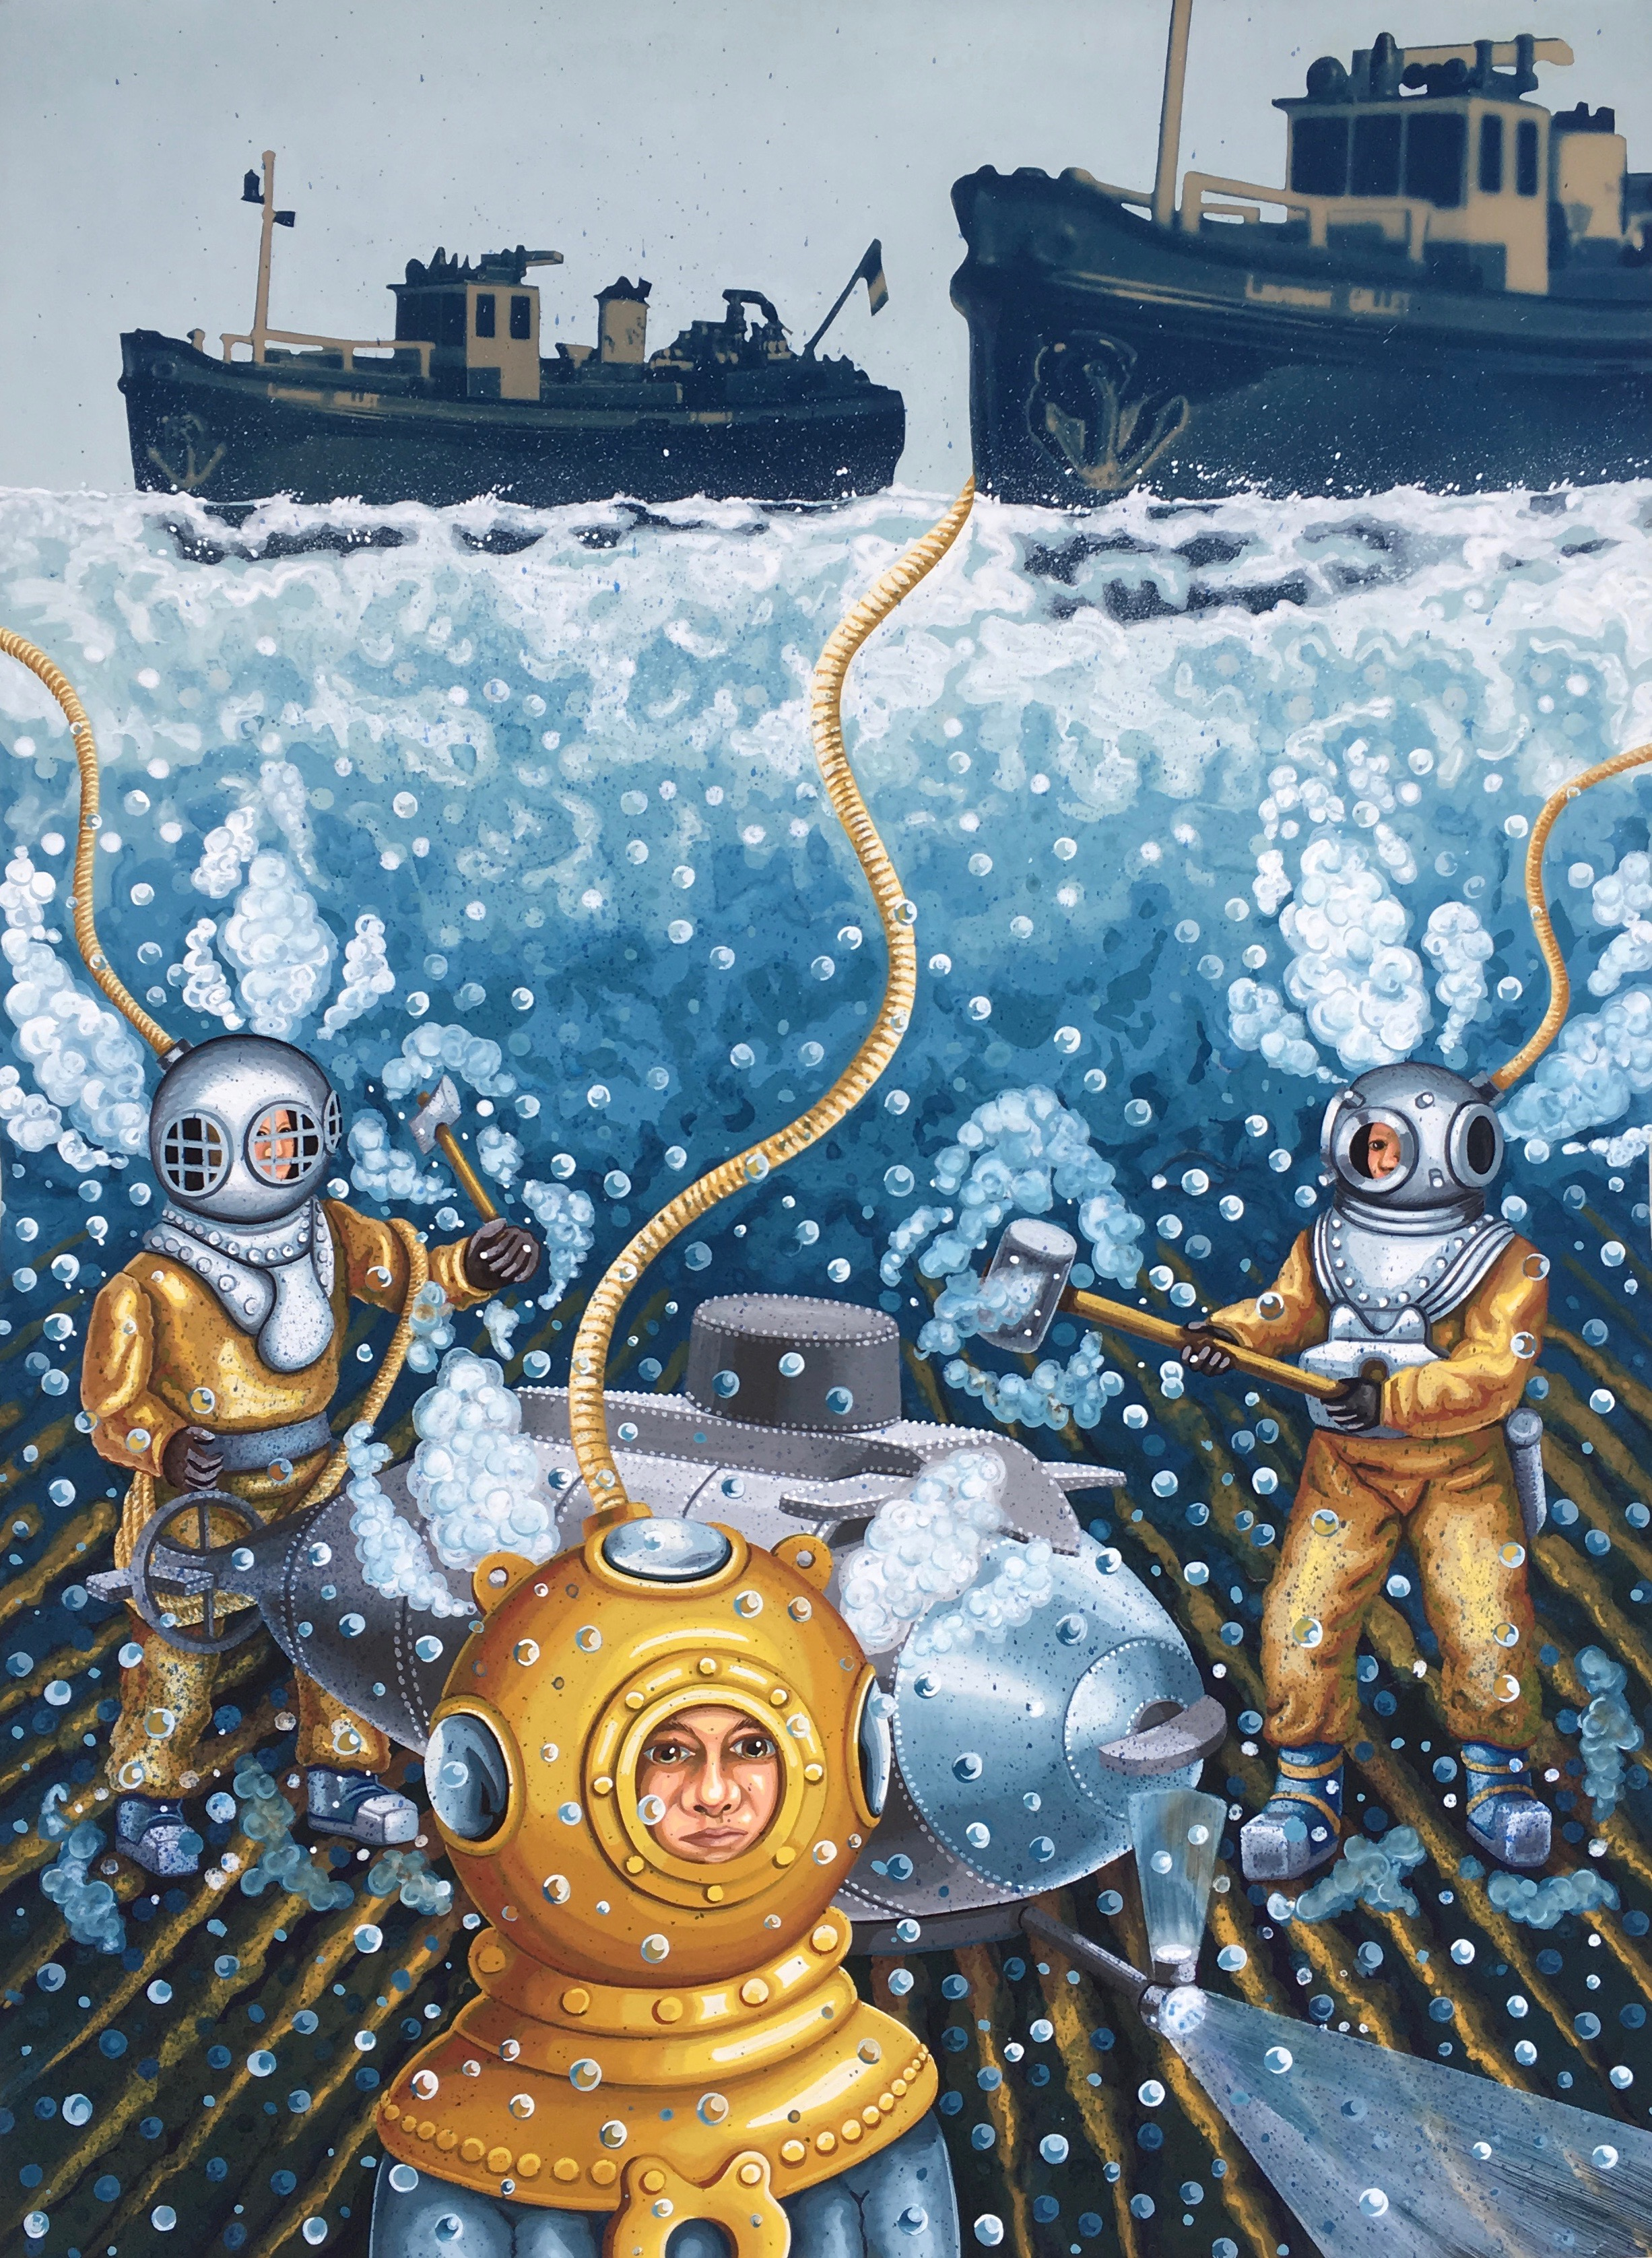 8) Deep Sea Divers. 2017, 76 x 56 cm, cyanotype print, gouache and ink on paper.